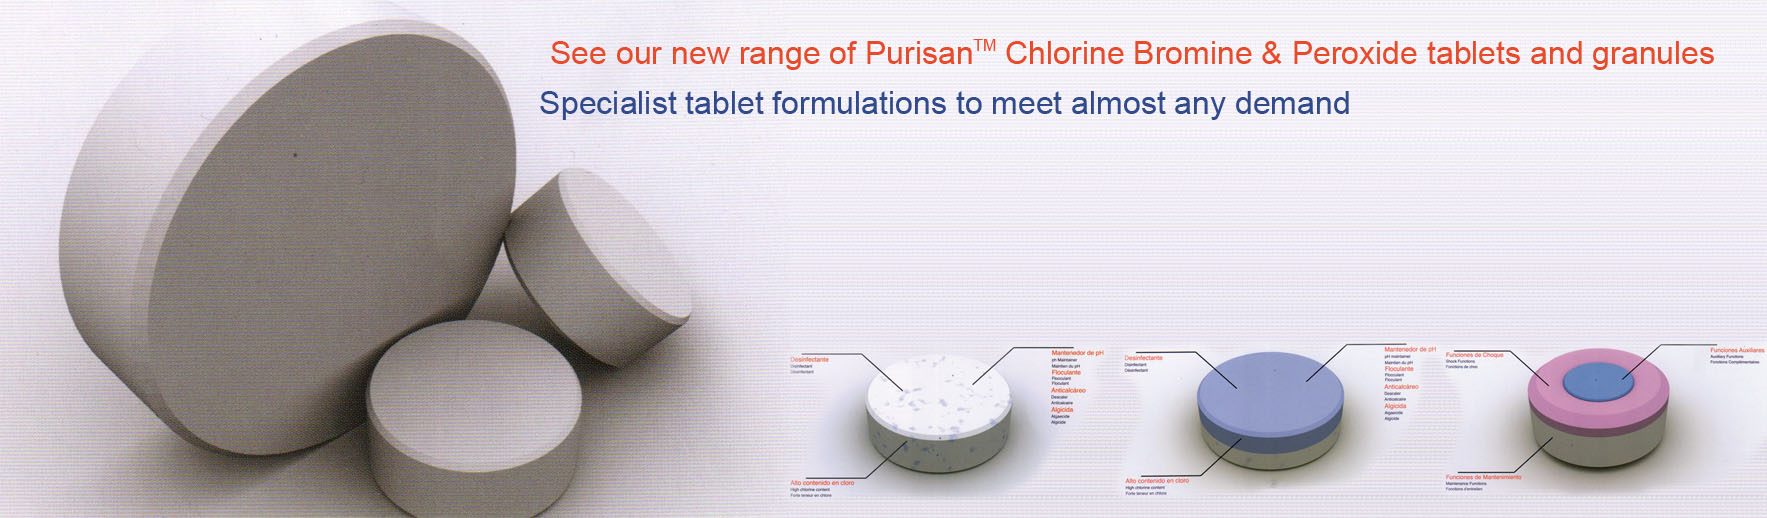 Purisan Tablets - Click to Shop Purisan